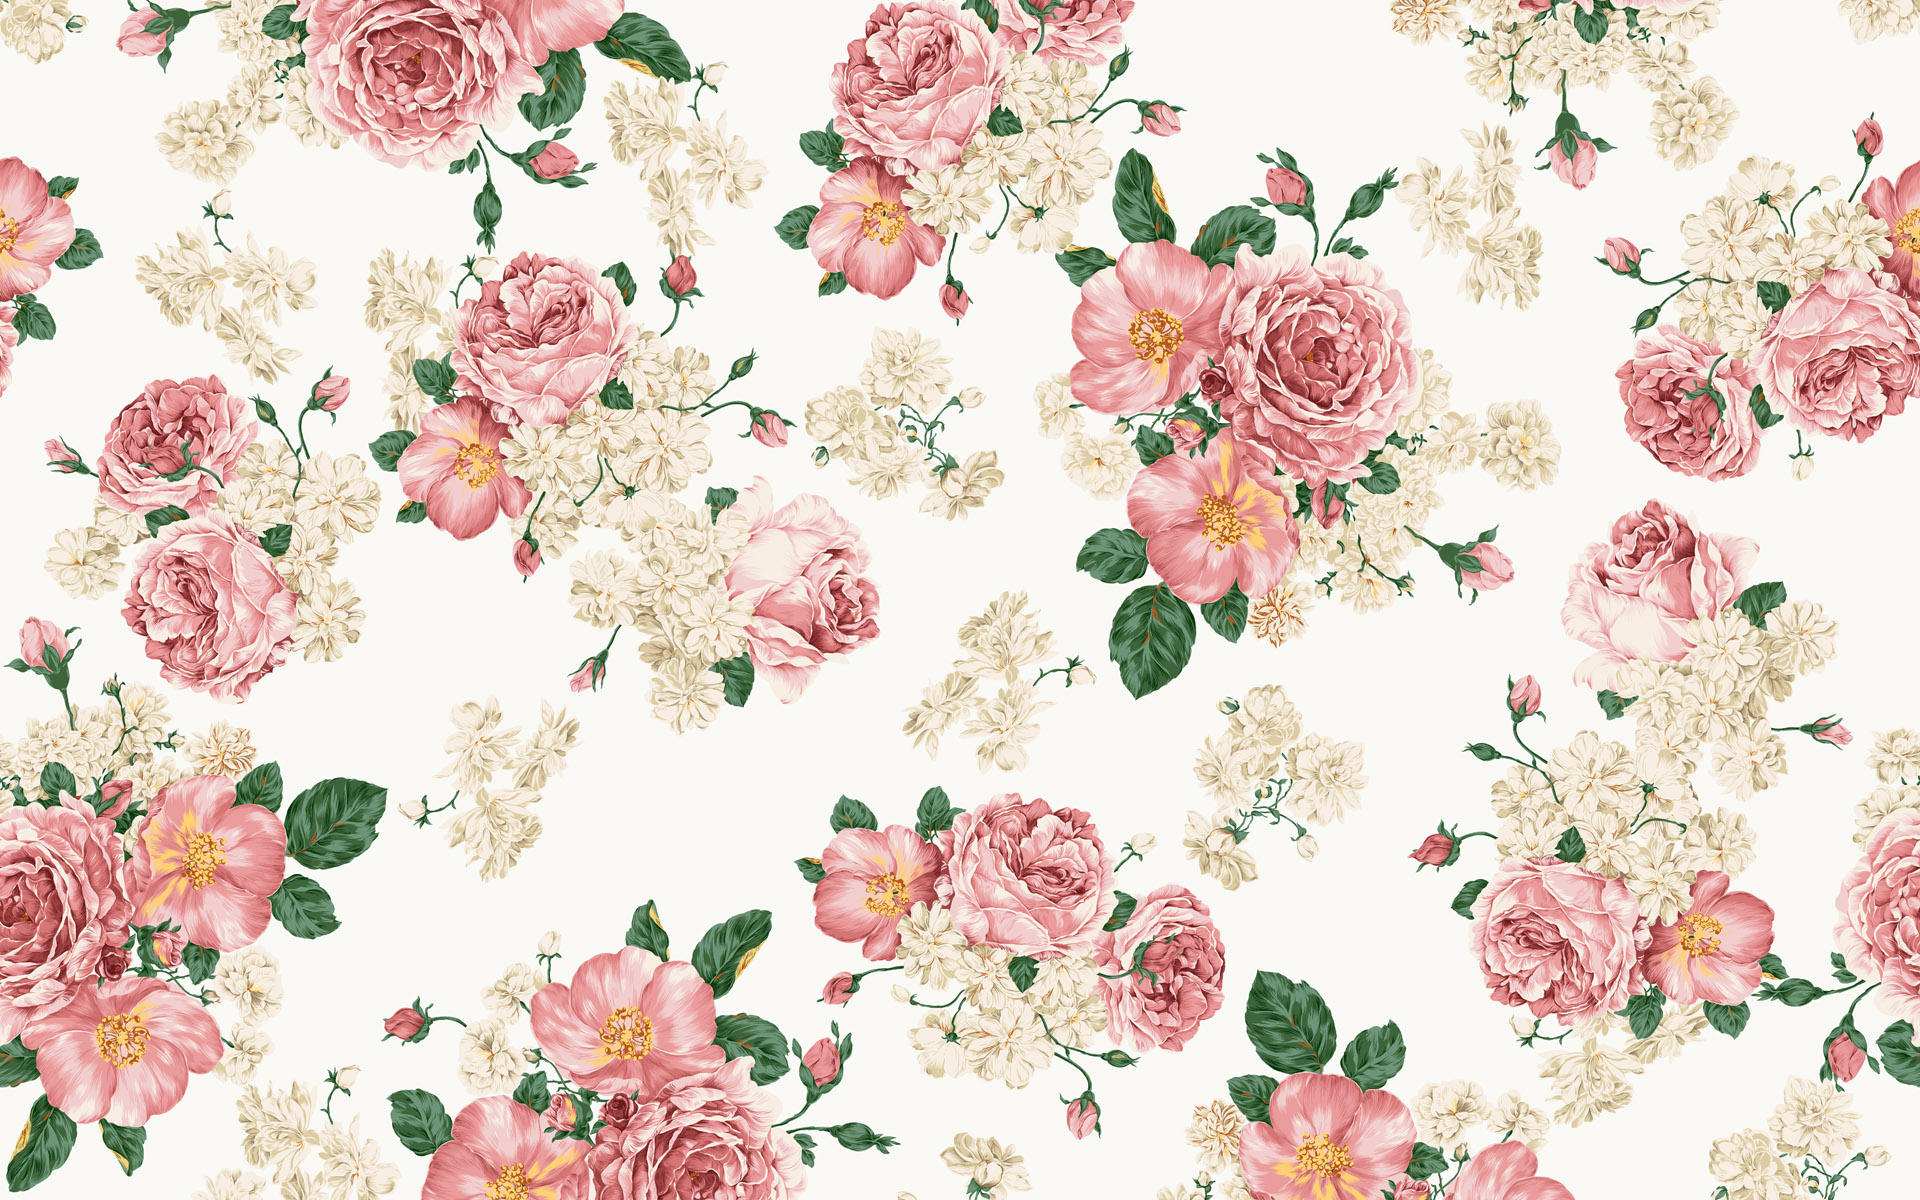 Vintage Flower Patterns Pattern Backgrounds For Powerpoint